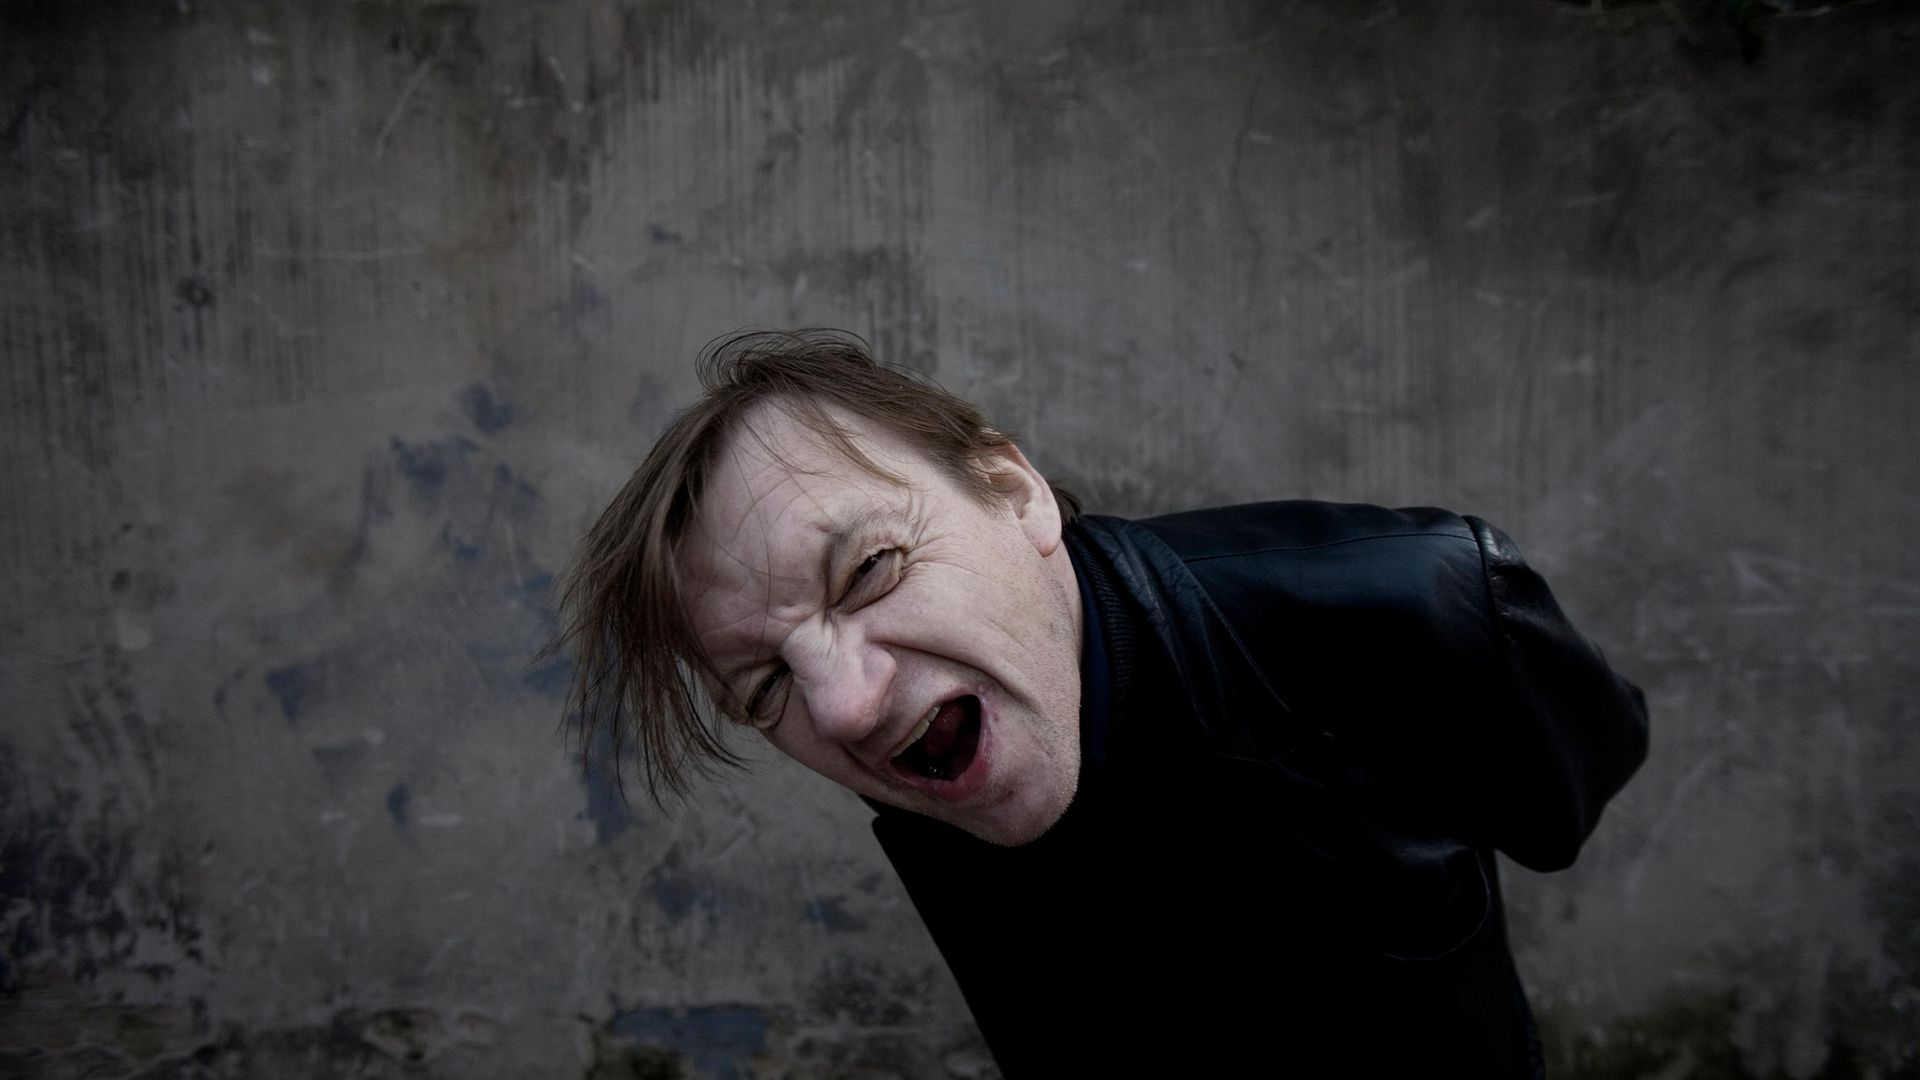 Mark E Smith of The Fall in Salford, Manchester, 18th March 2011 - Credit: Photo by Kevin Cummins/Getty Images